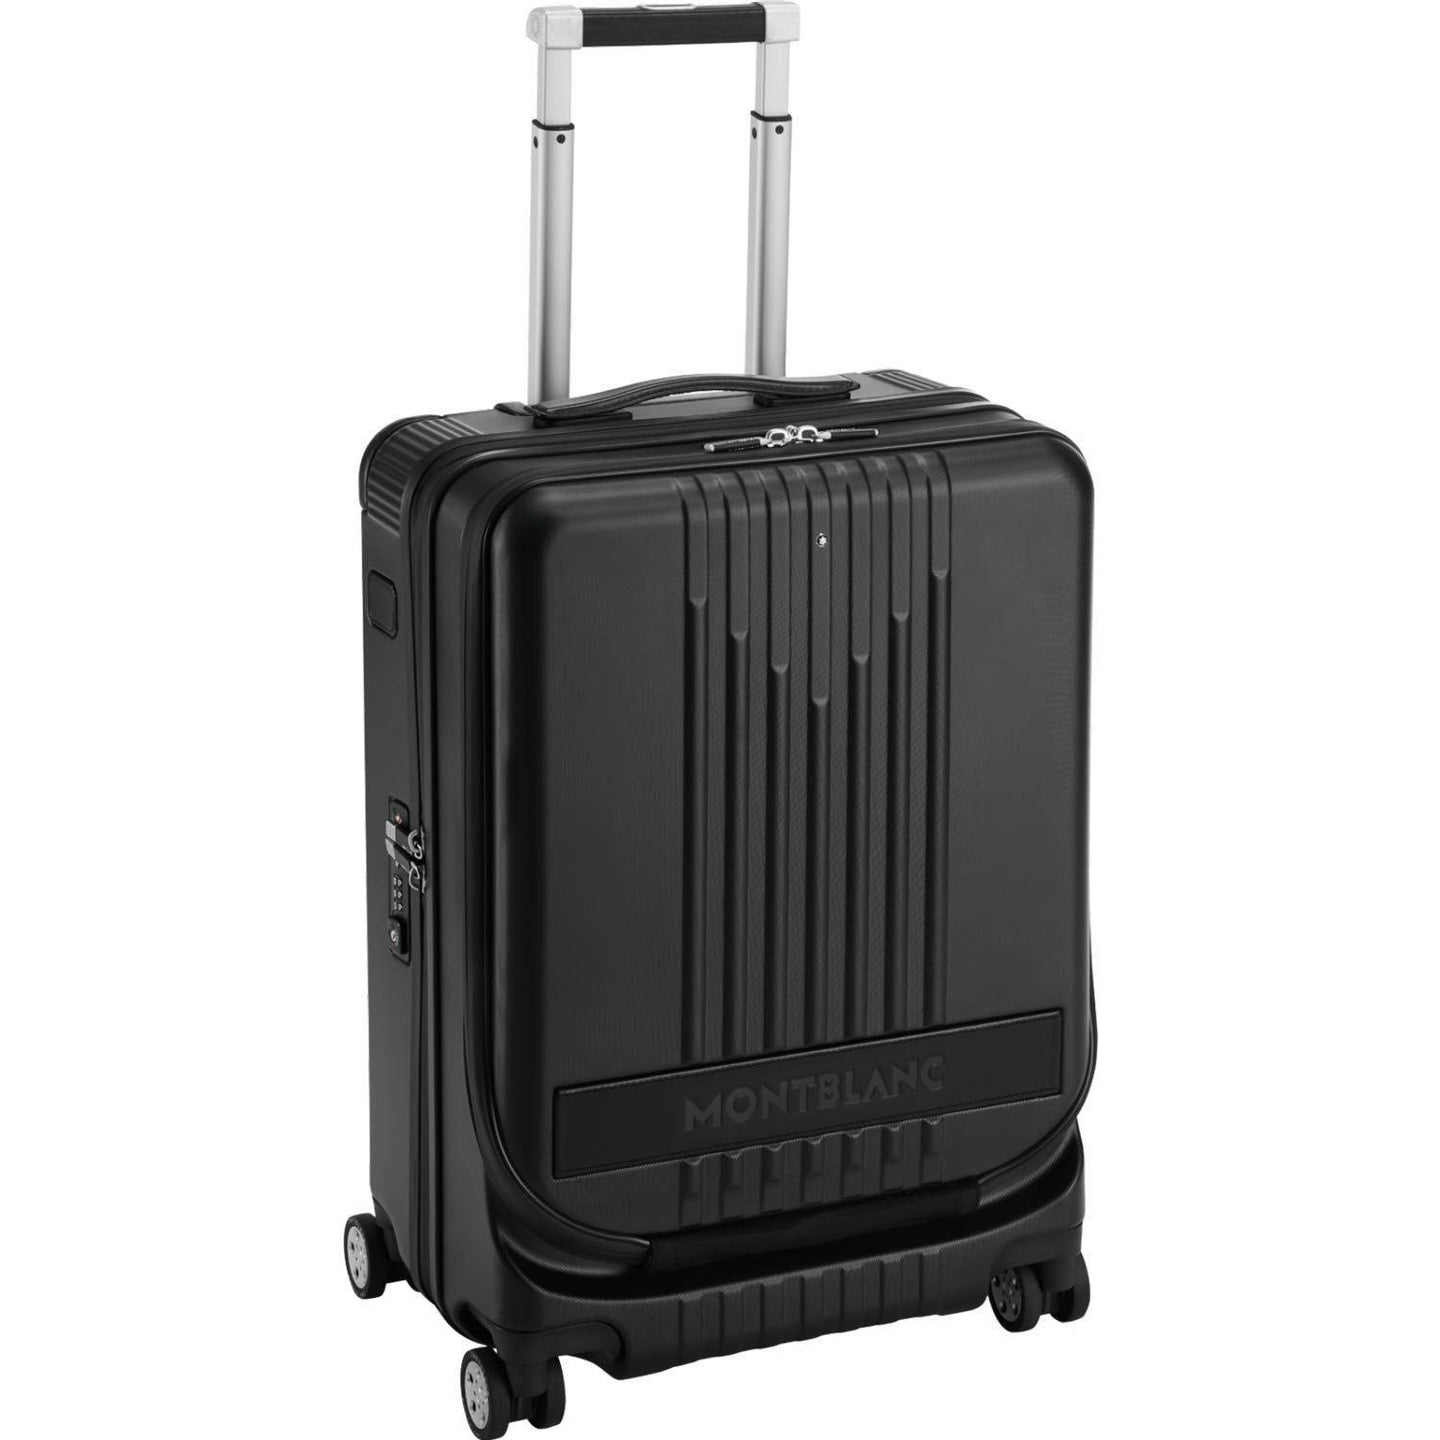 Montblanc Trolley #My4810 Cabin With Pocket Black 4 Wheels ref. 118728 (su prenotazione) (2053140742198)